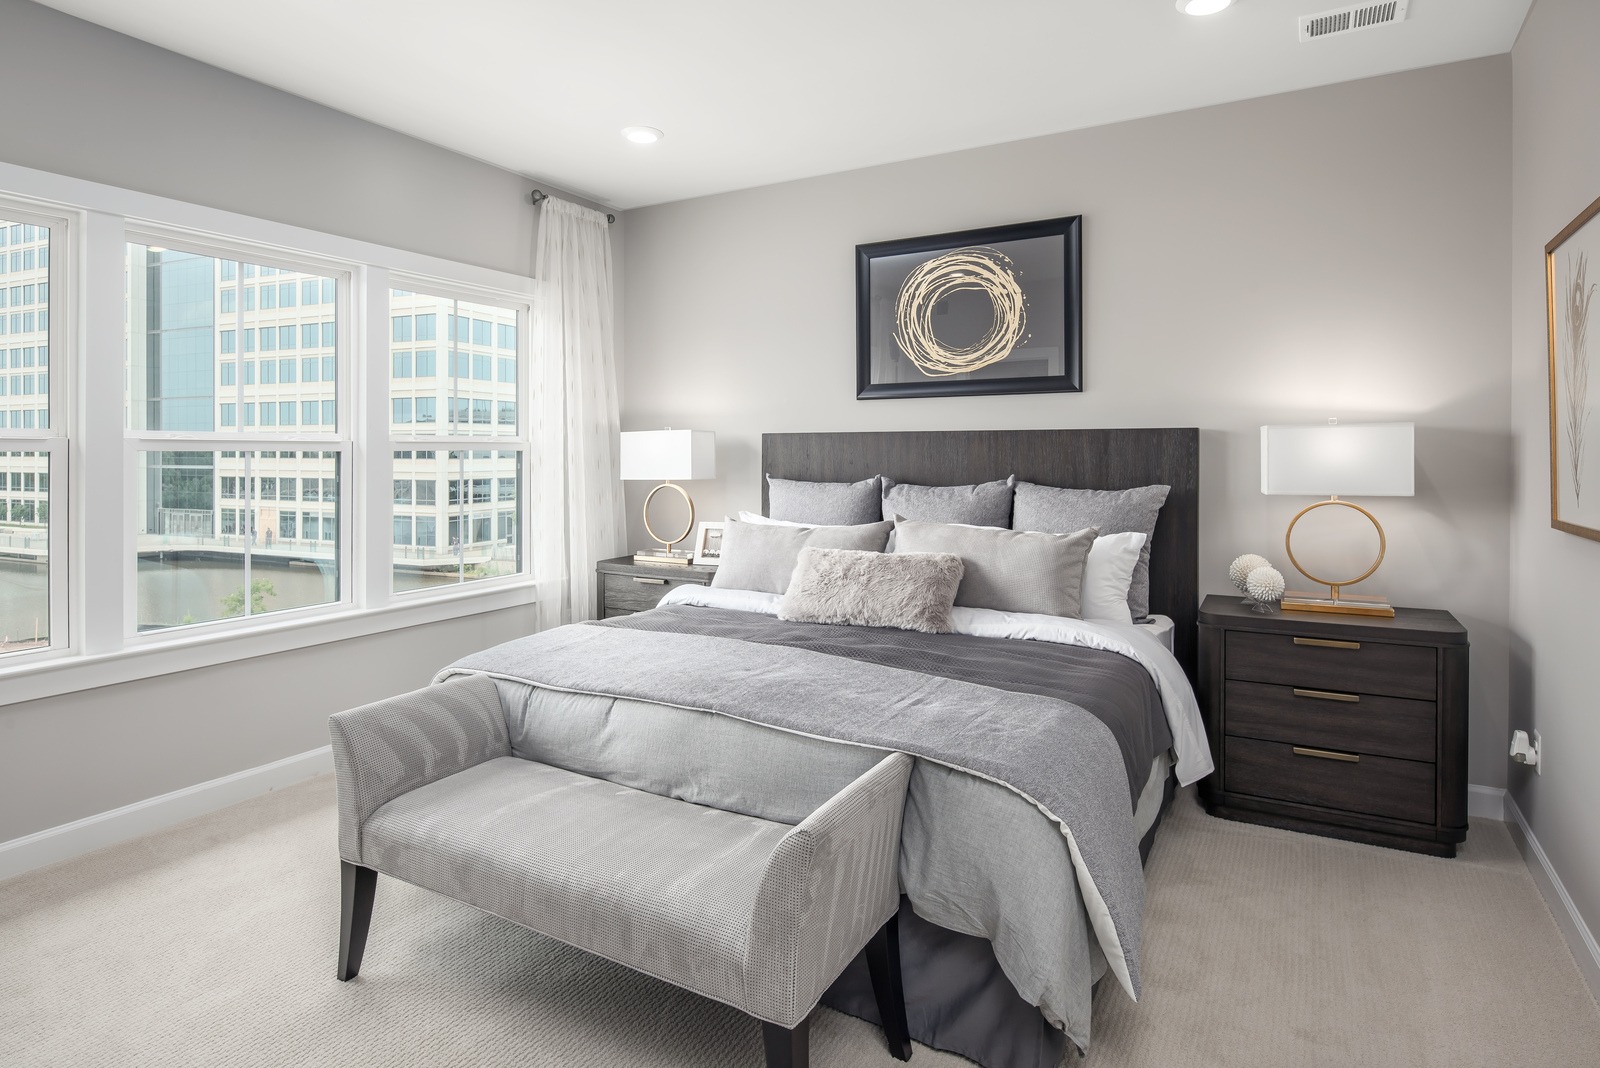 The spacious Hancock floorplan easily accommodates a king-size bed and your favorite furniture pieces.